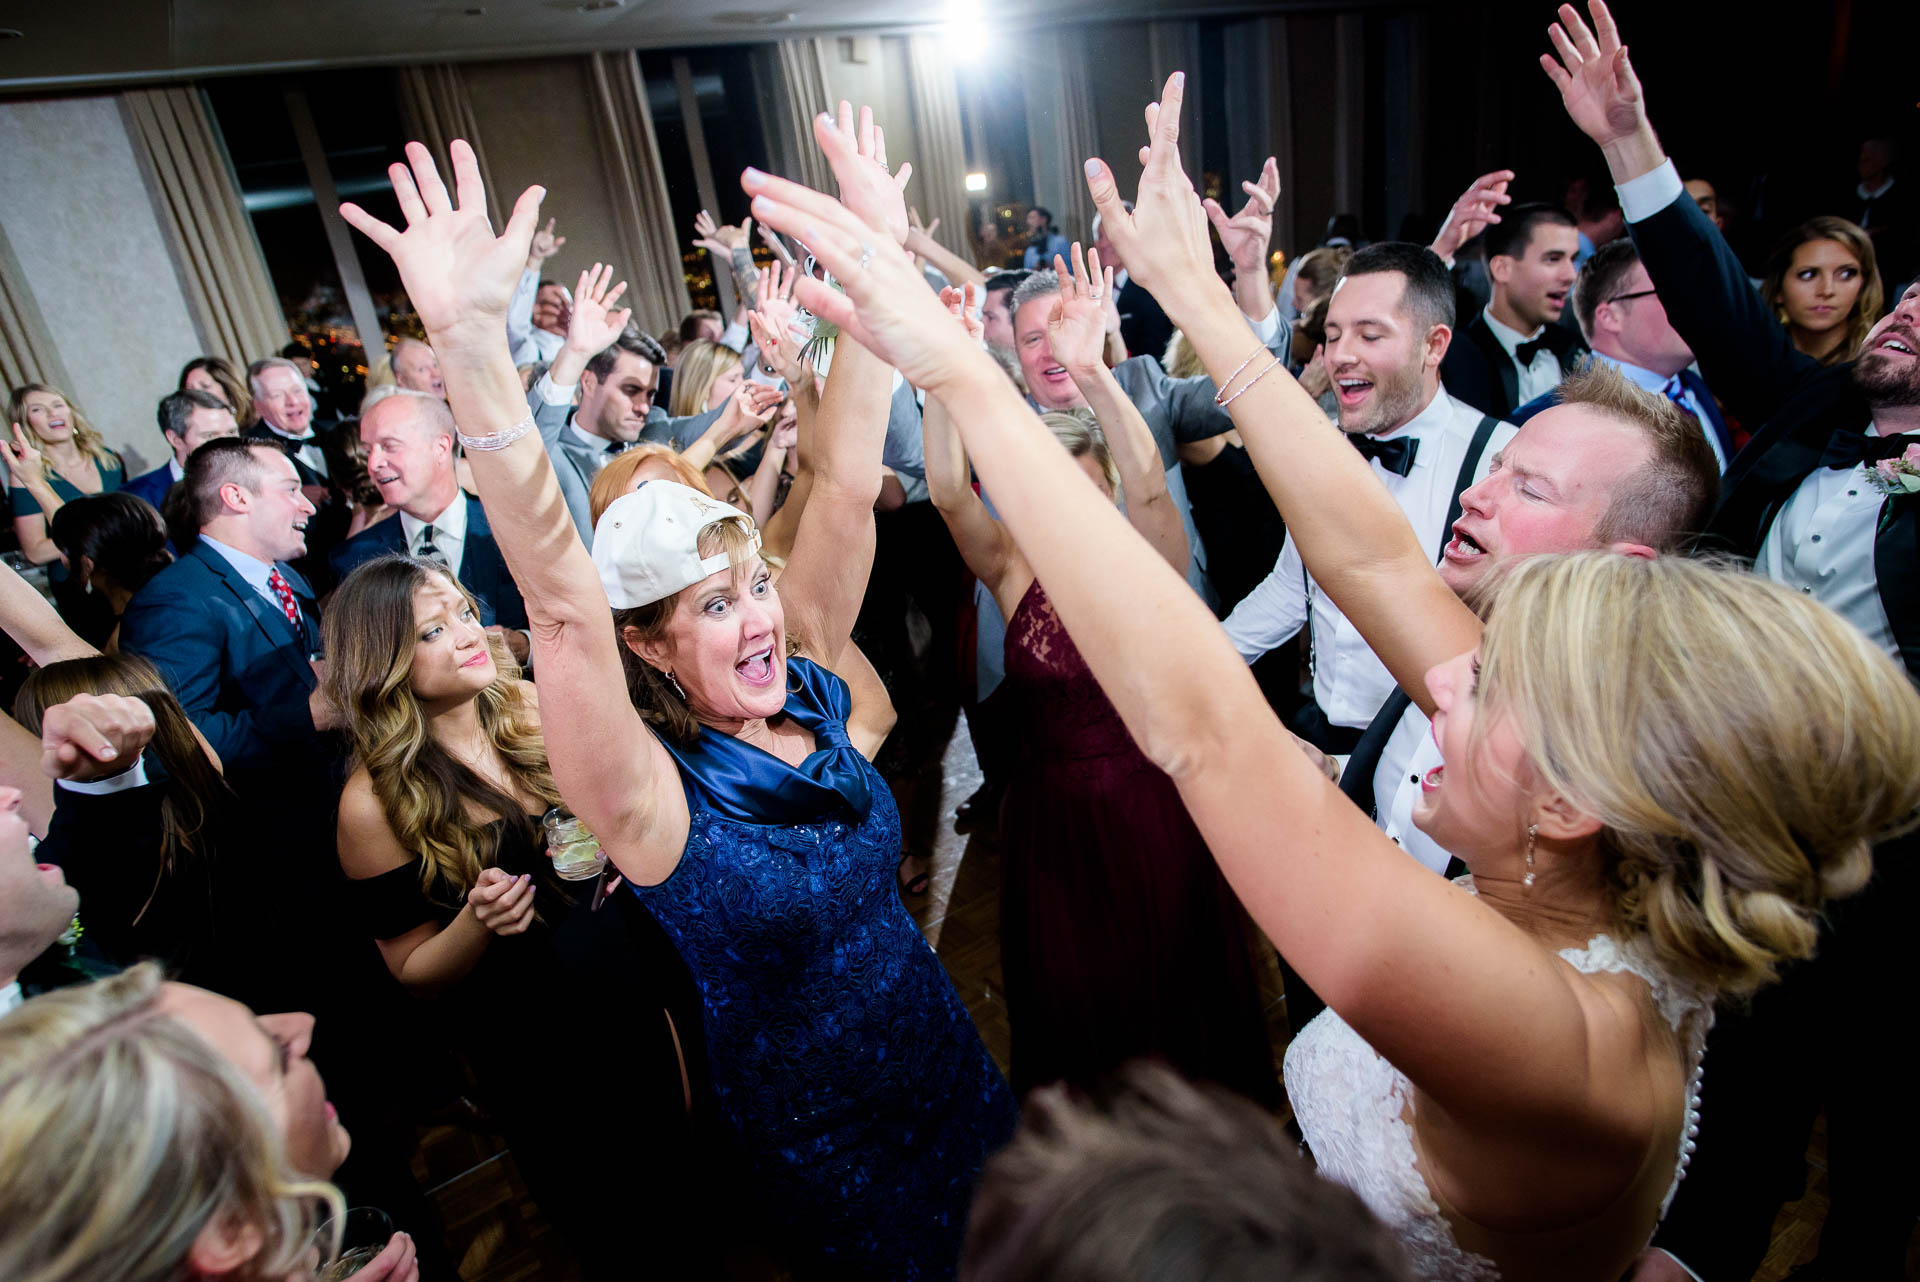 Packed dance floor during a wedding reception at the Mid America Club in Chicago.